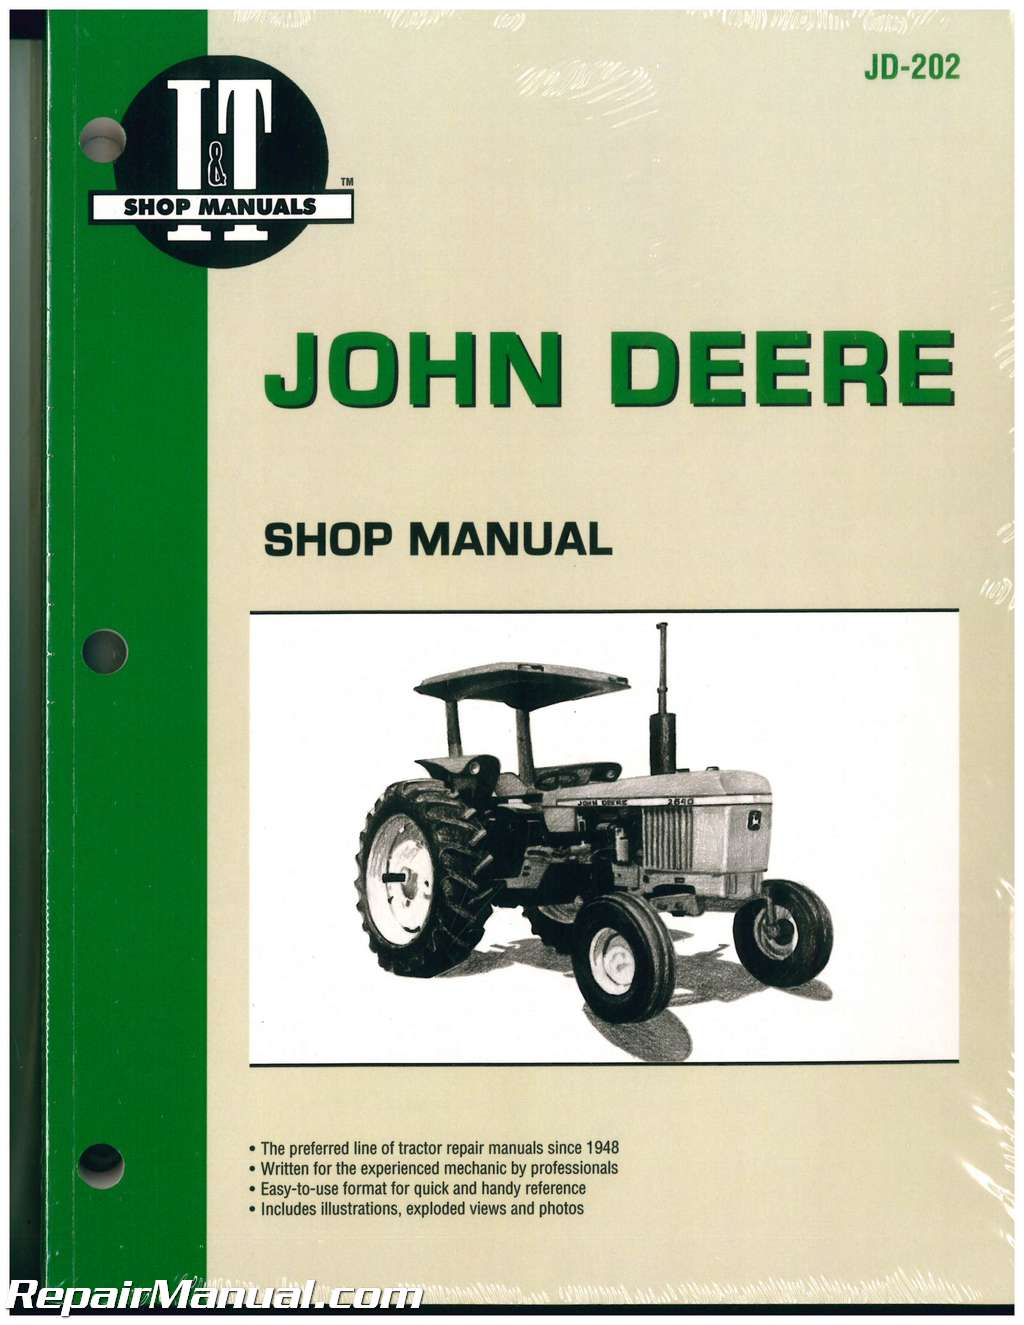 3203 John Deere Tractor Wiring Diagram 38 Images Ignition Manual 2040 2130 2510 2520 2240 2440 2630 2640 4040 4240 4440 4640